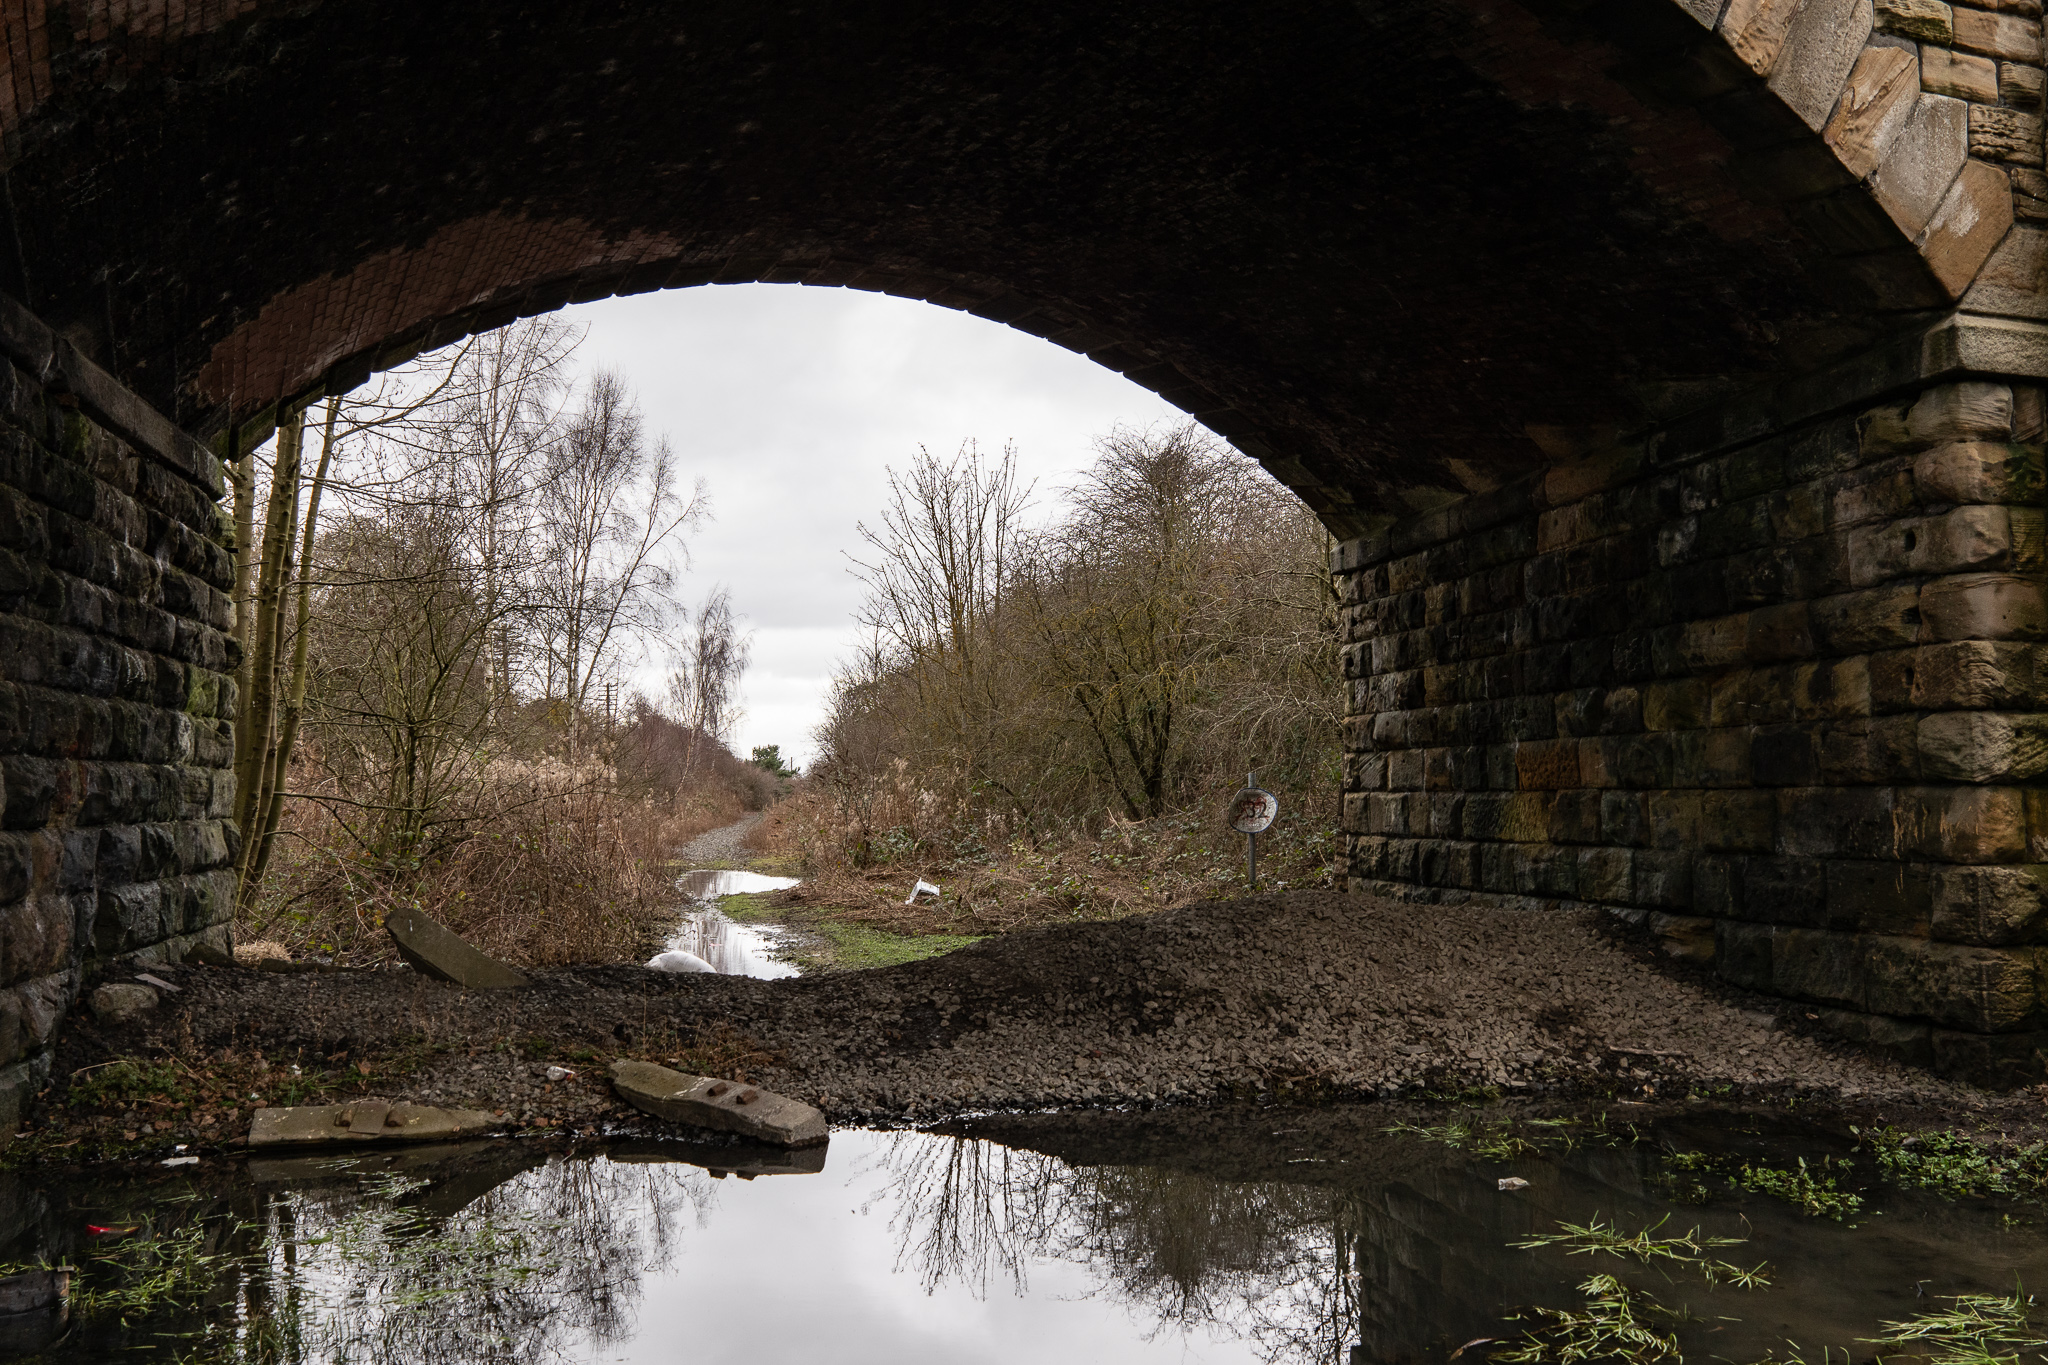 Leamside Road Bridge